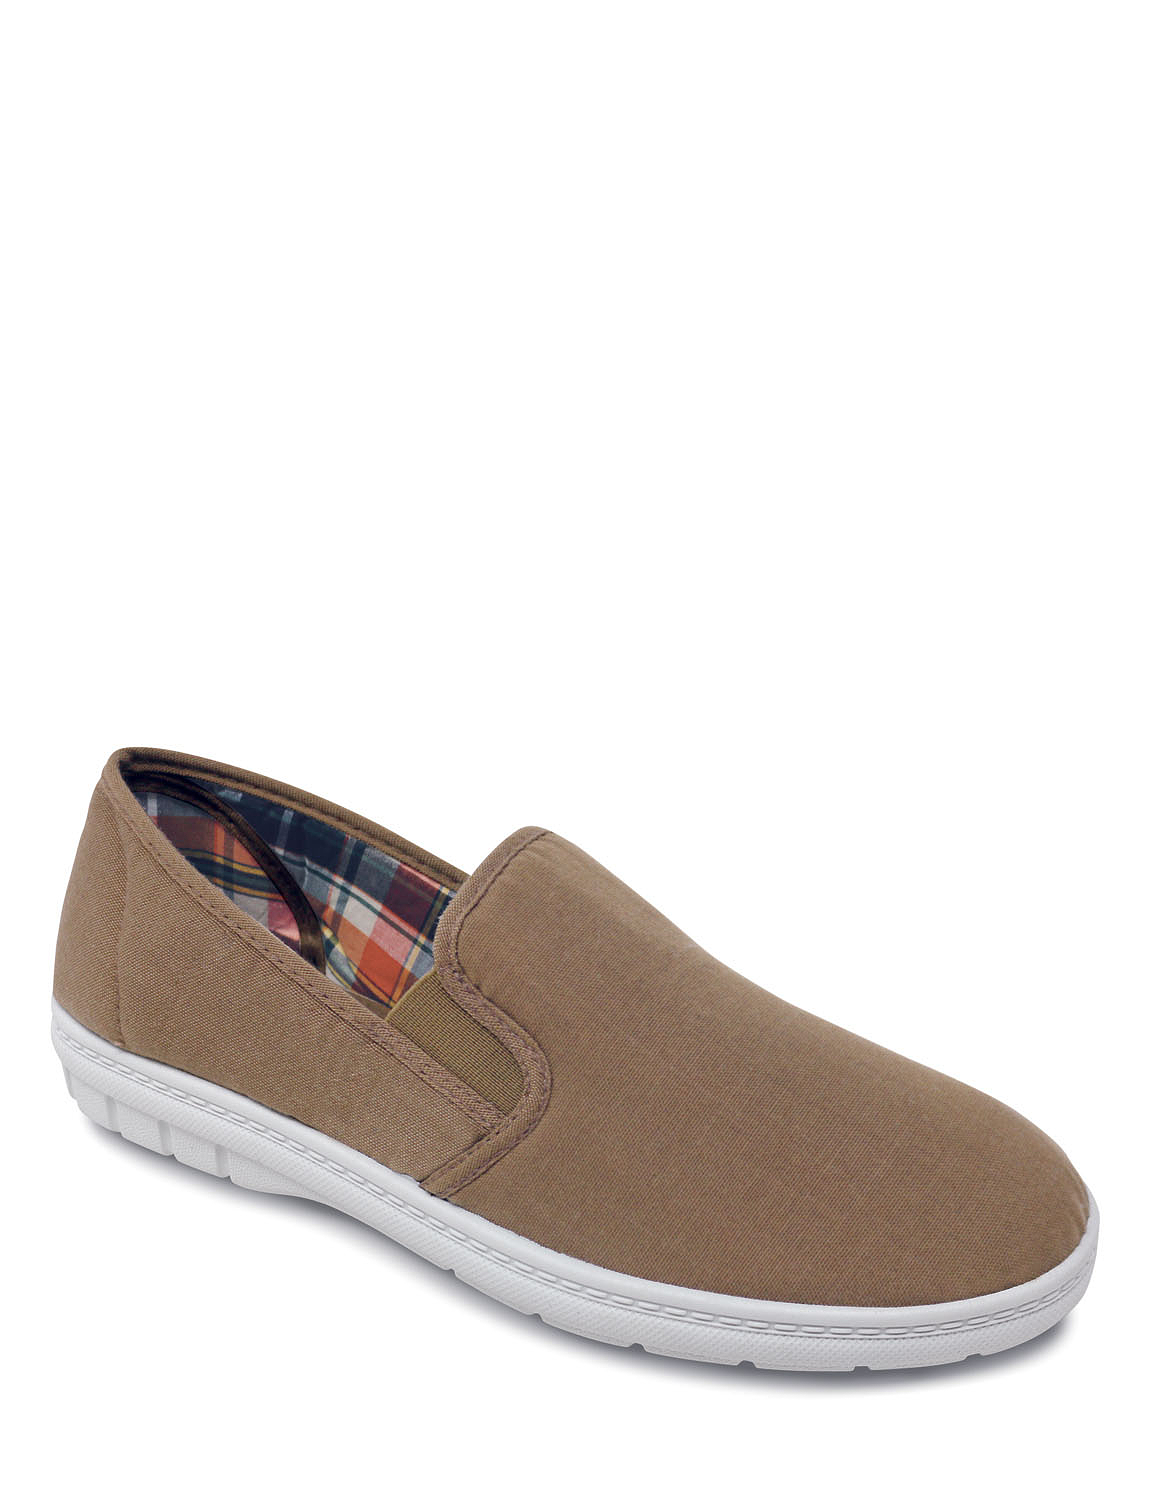 wide fit slip on canvas shoes chums